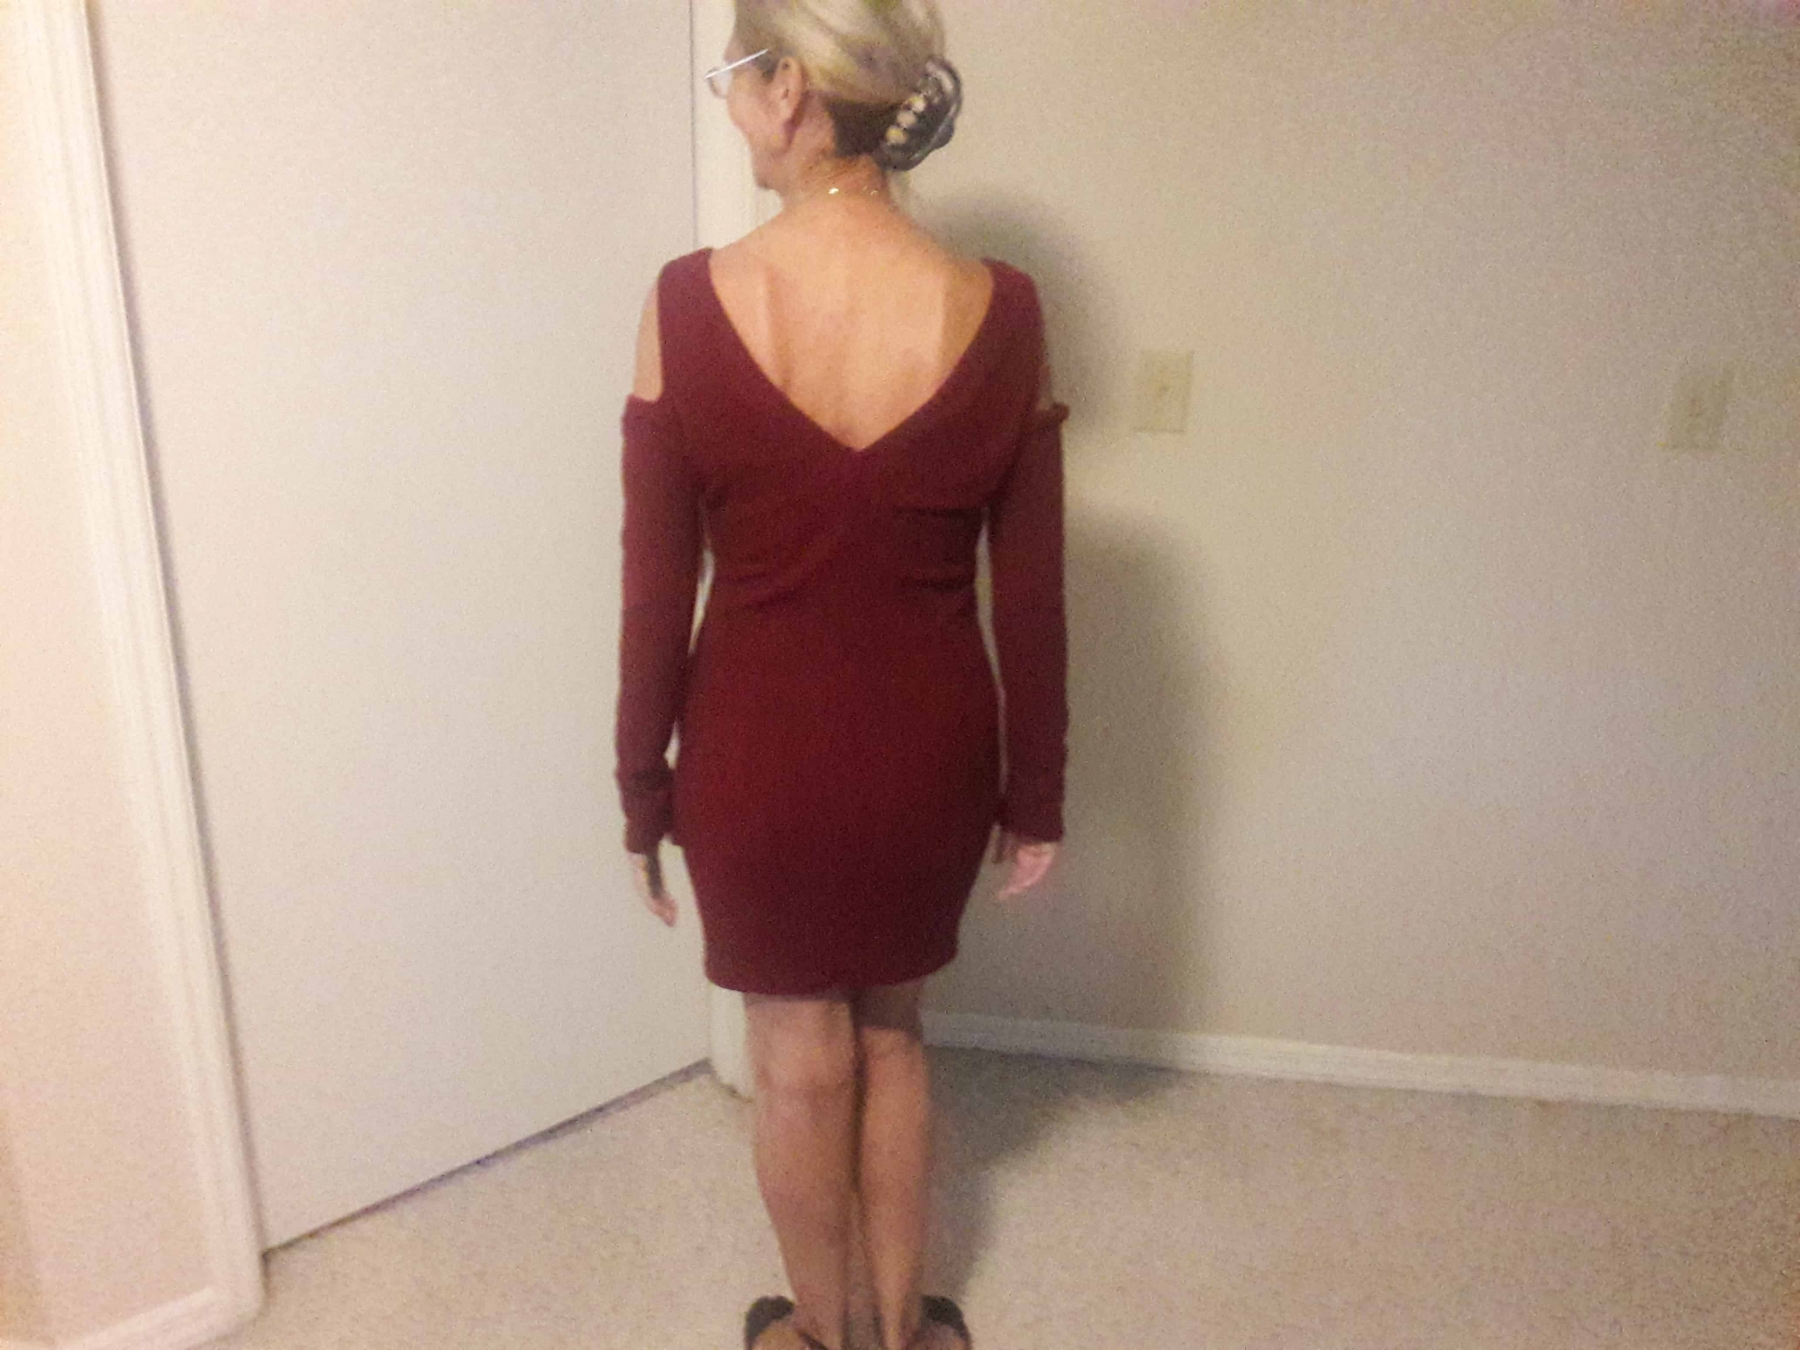 The sexy Ninimour Knitted Mini Dress feels great on.